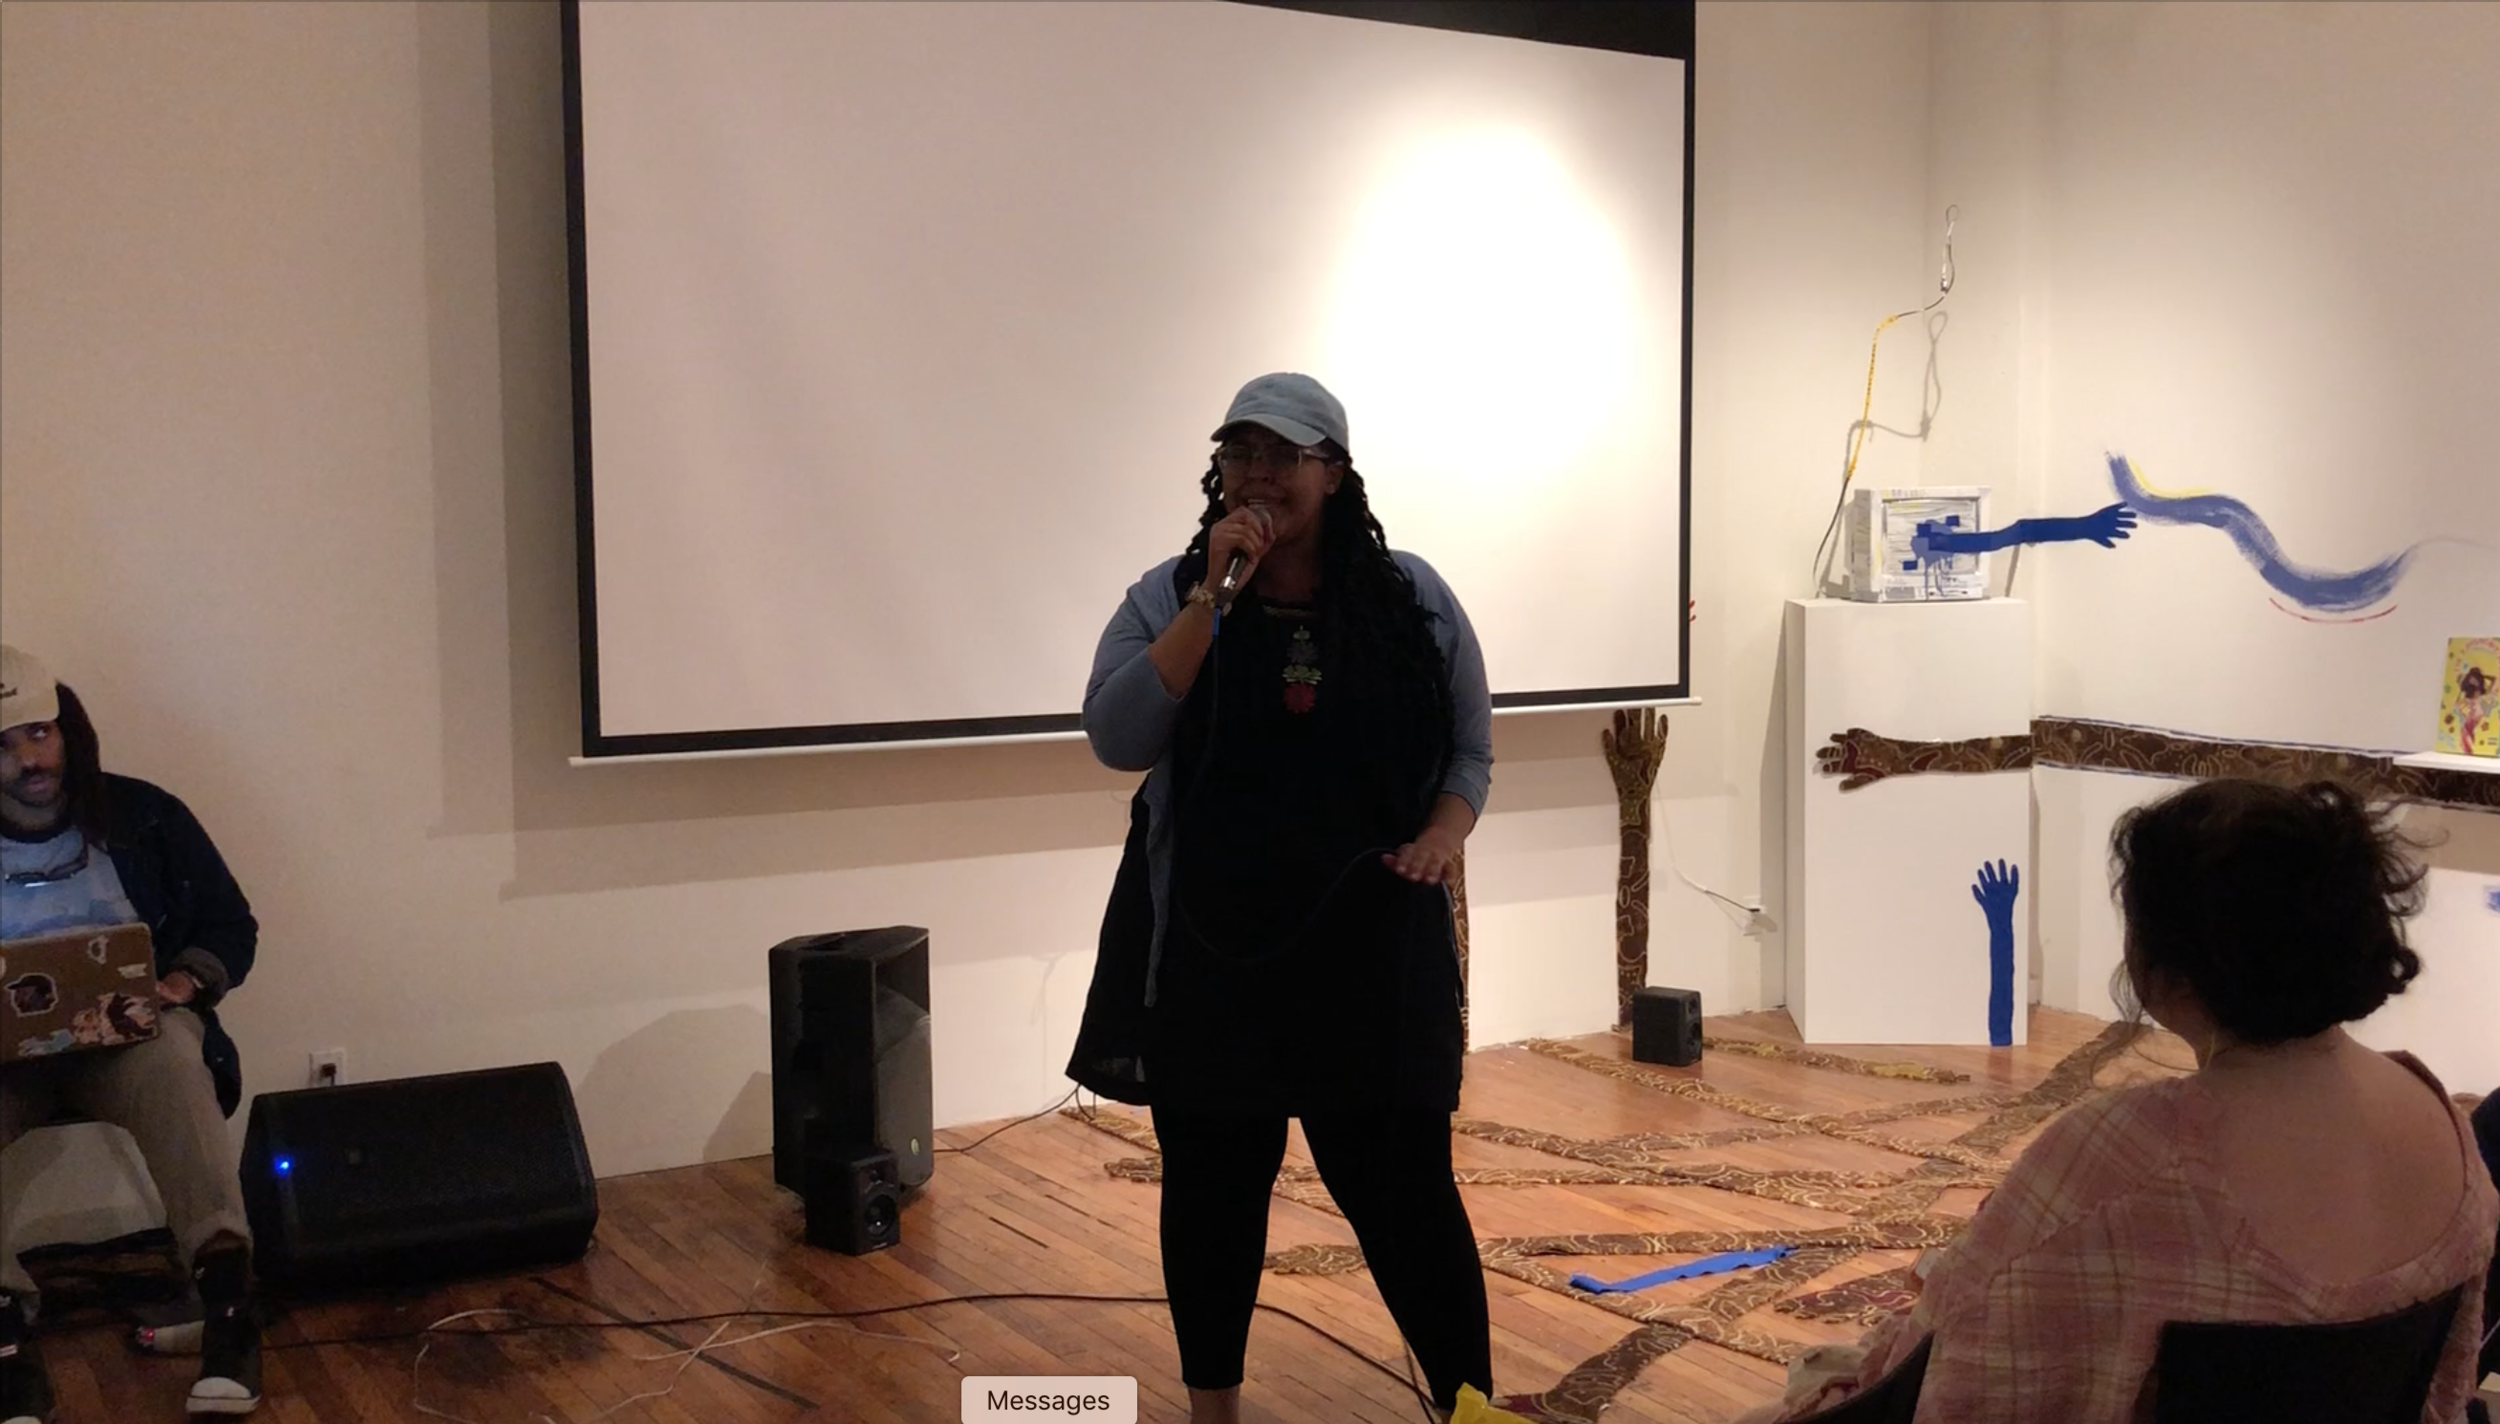 Featured: The Afr0dite performs at BronxArtSpace at the Spi(Cy-Fi)lms event